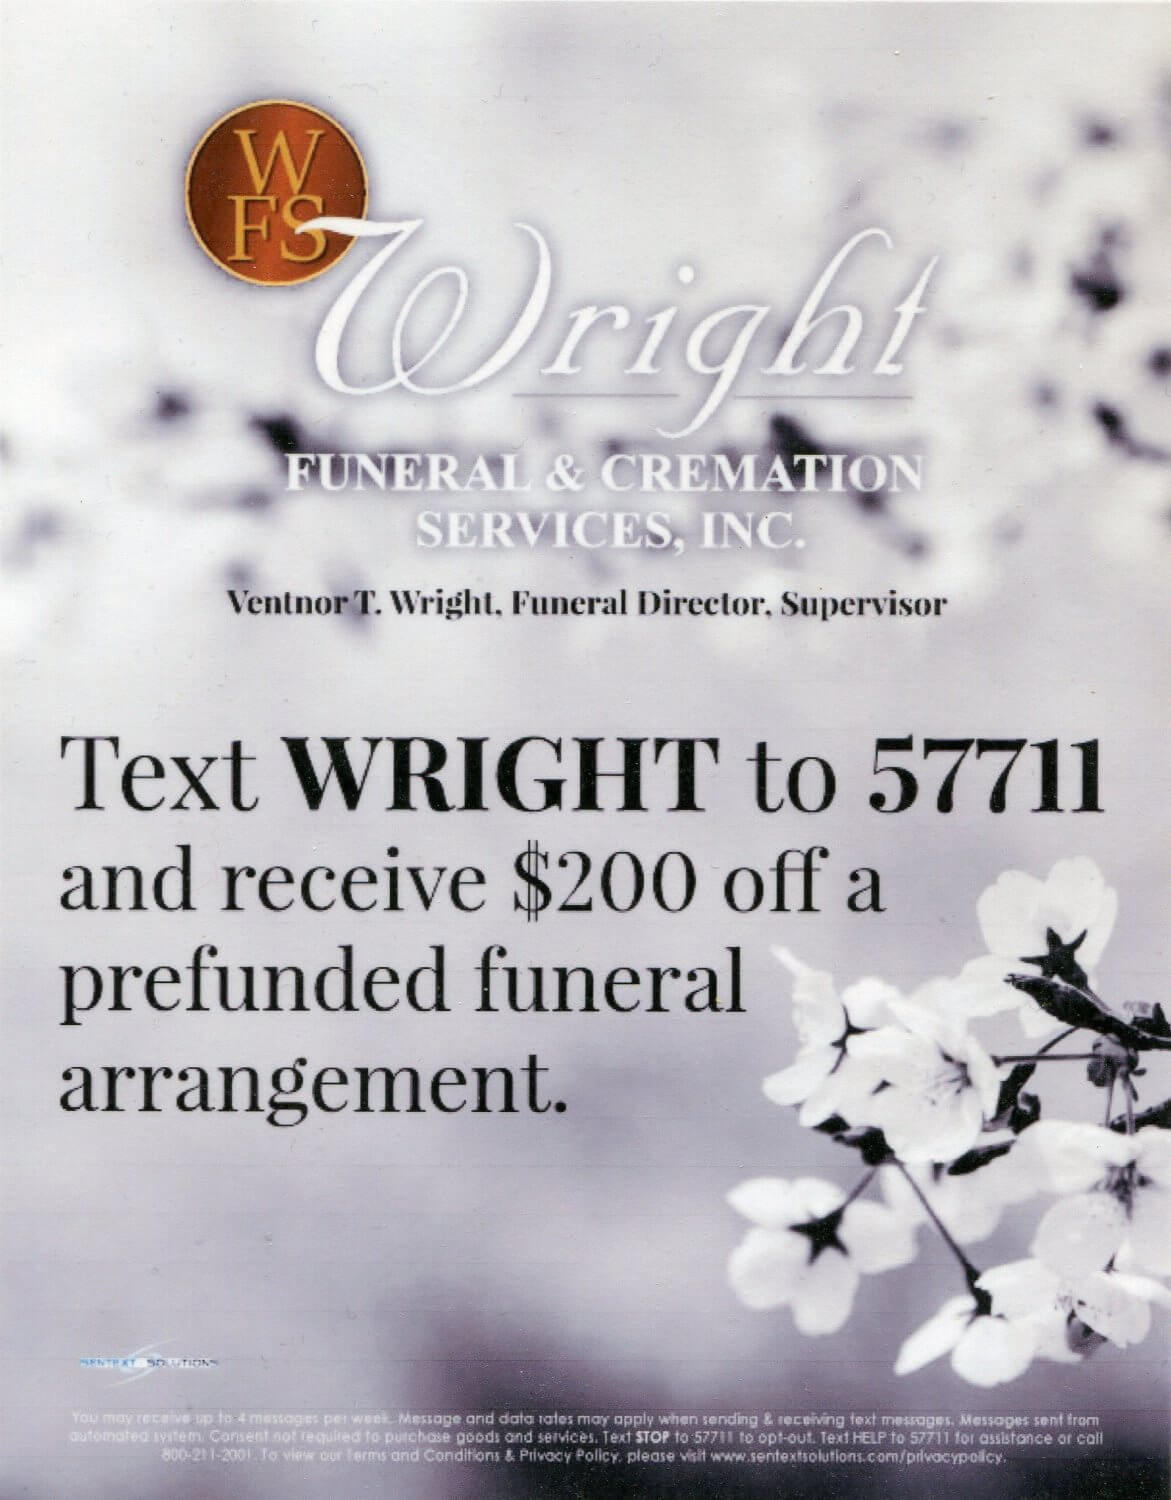 Wright Funeral Cremation Services Inc Coatesville Pa Funeral